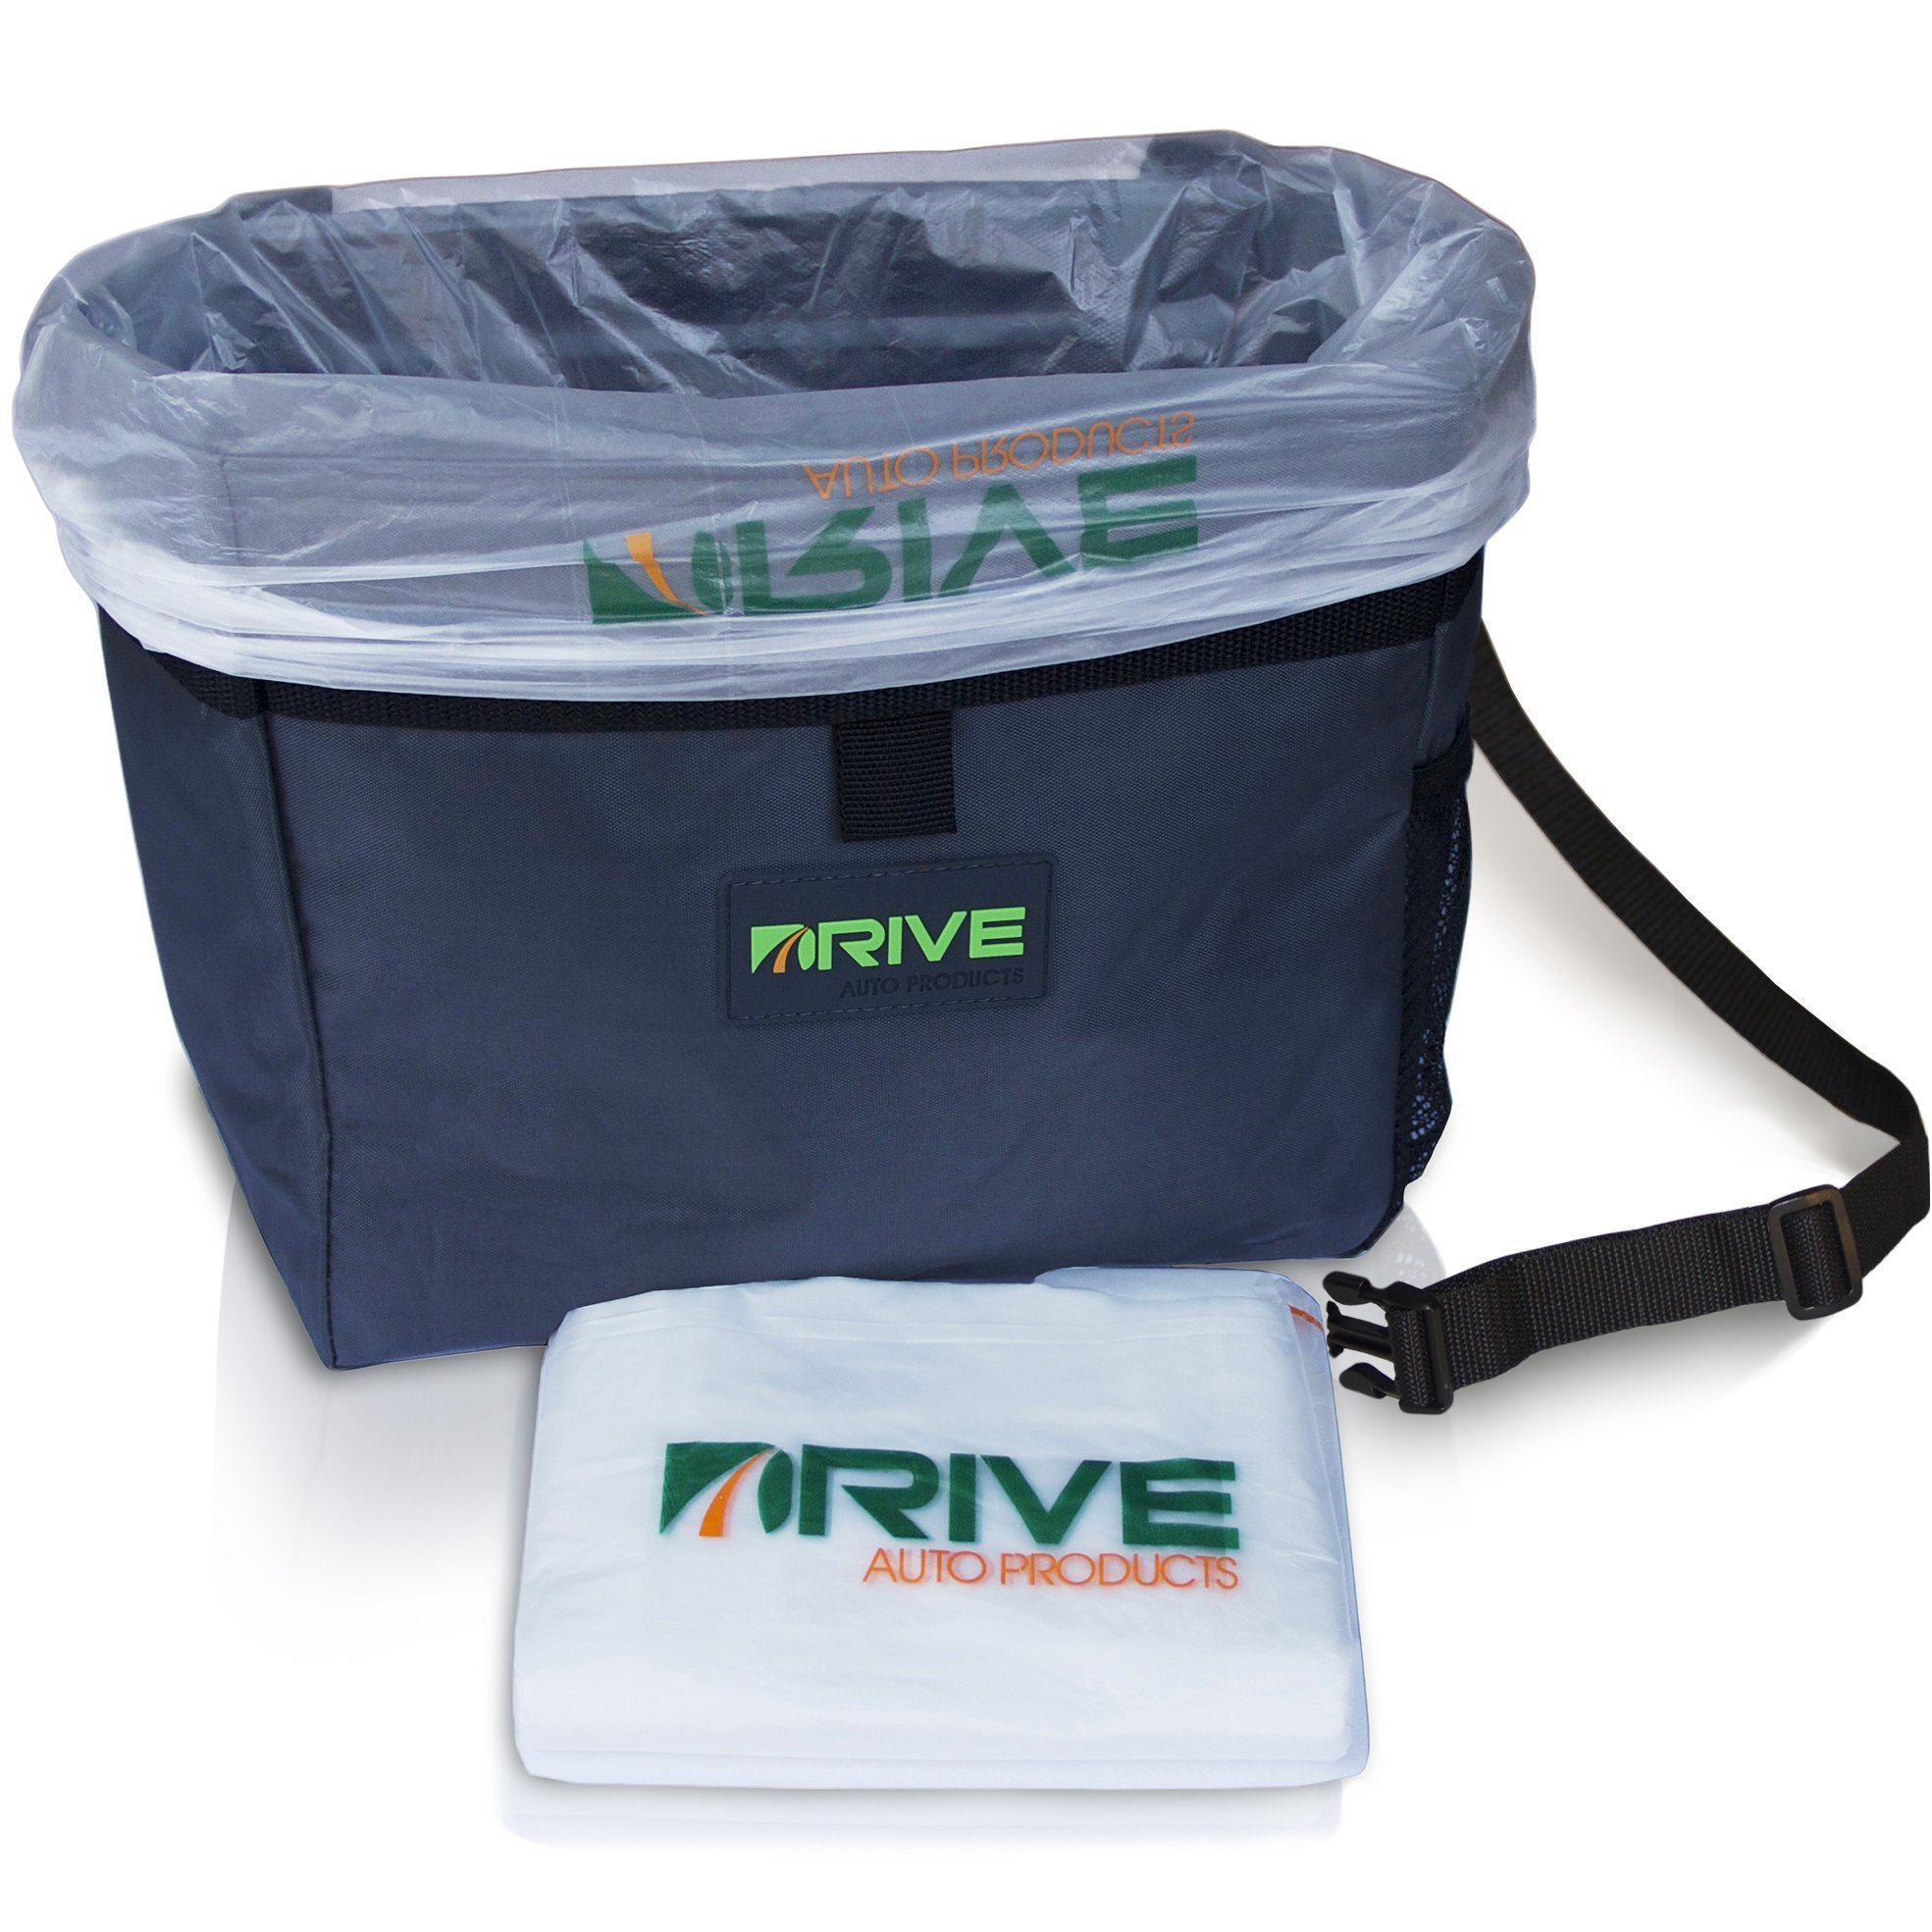 Car Garbage Can by Drive Auto Products from The Drive Bin As Seen On TV Collection, Black Strap product image